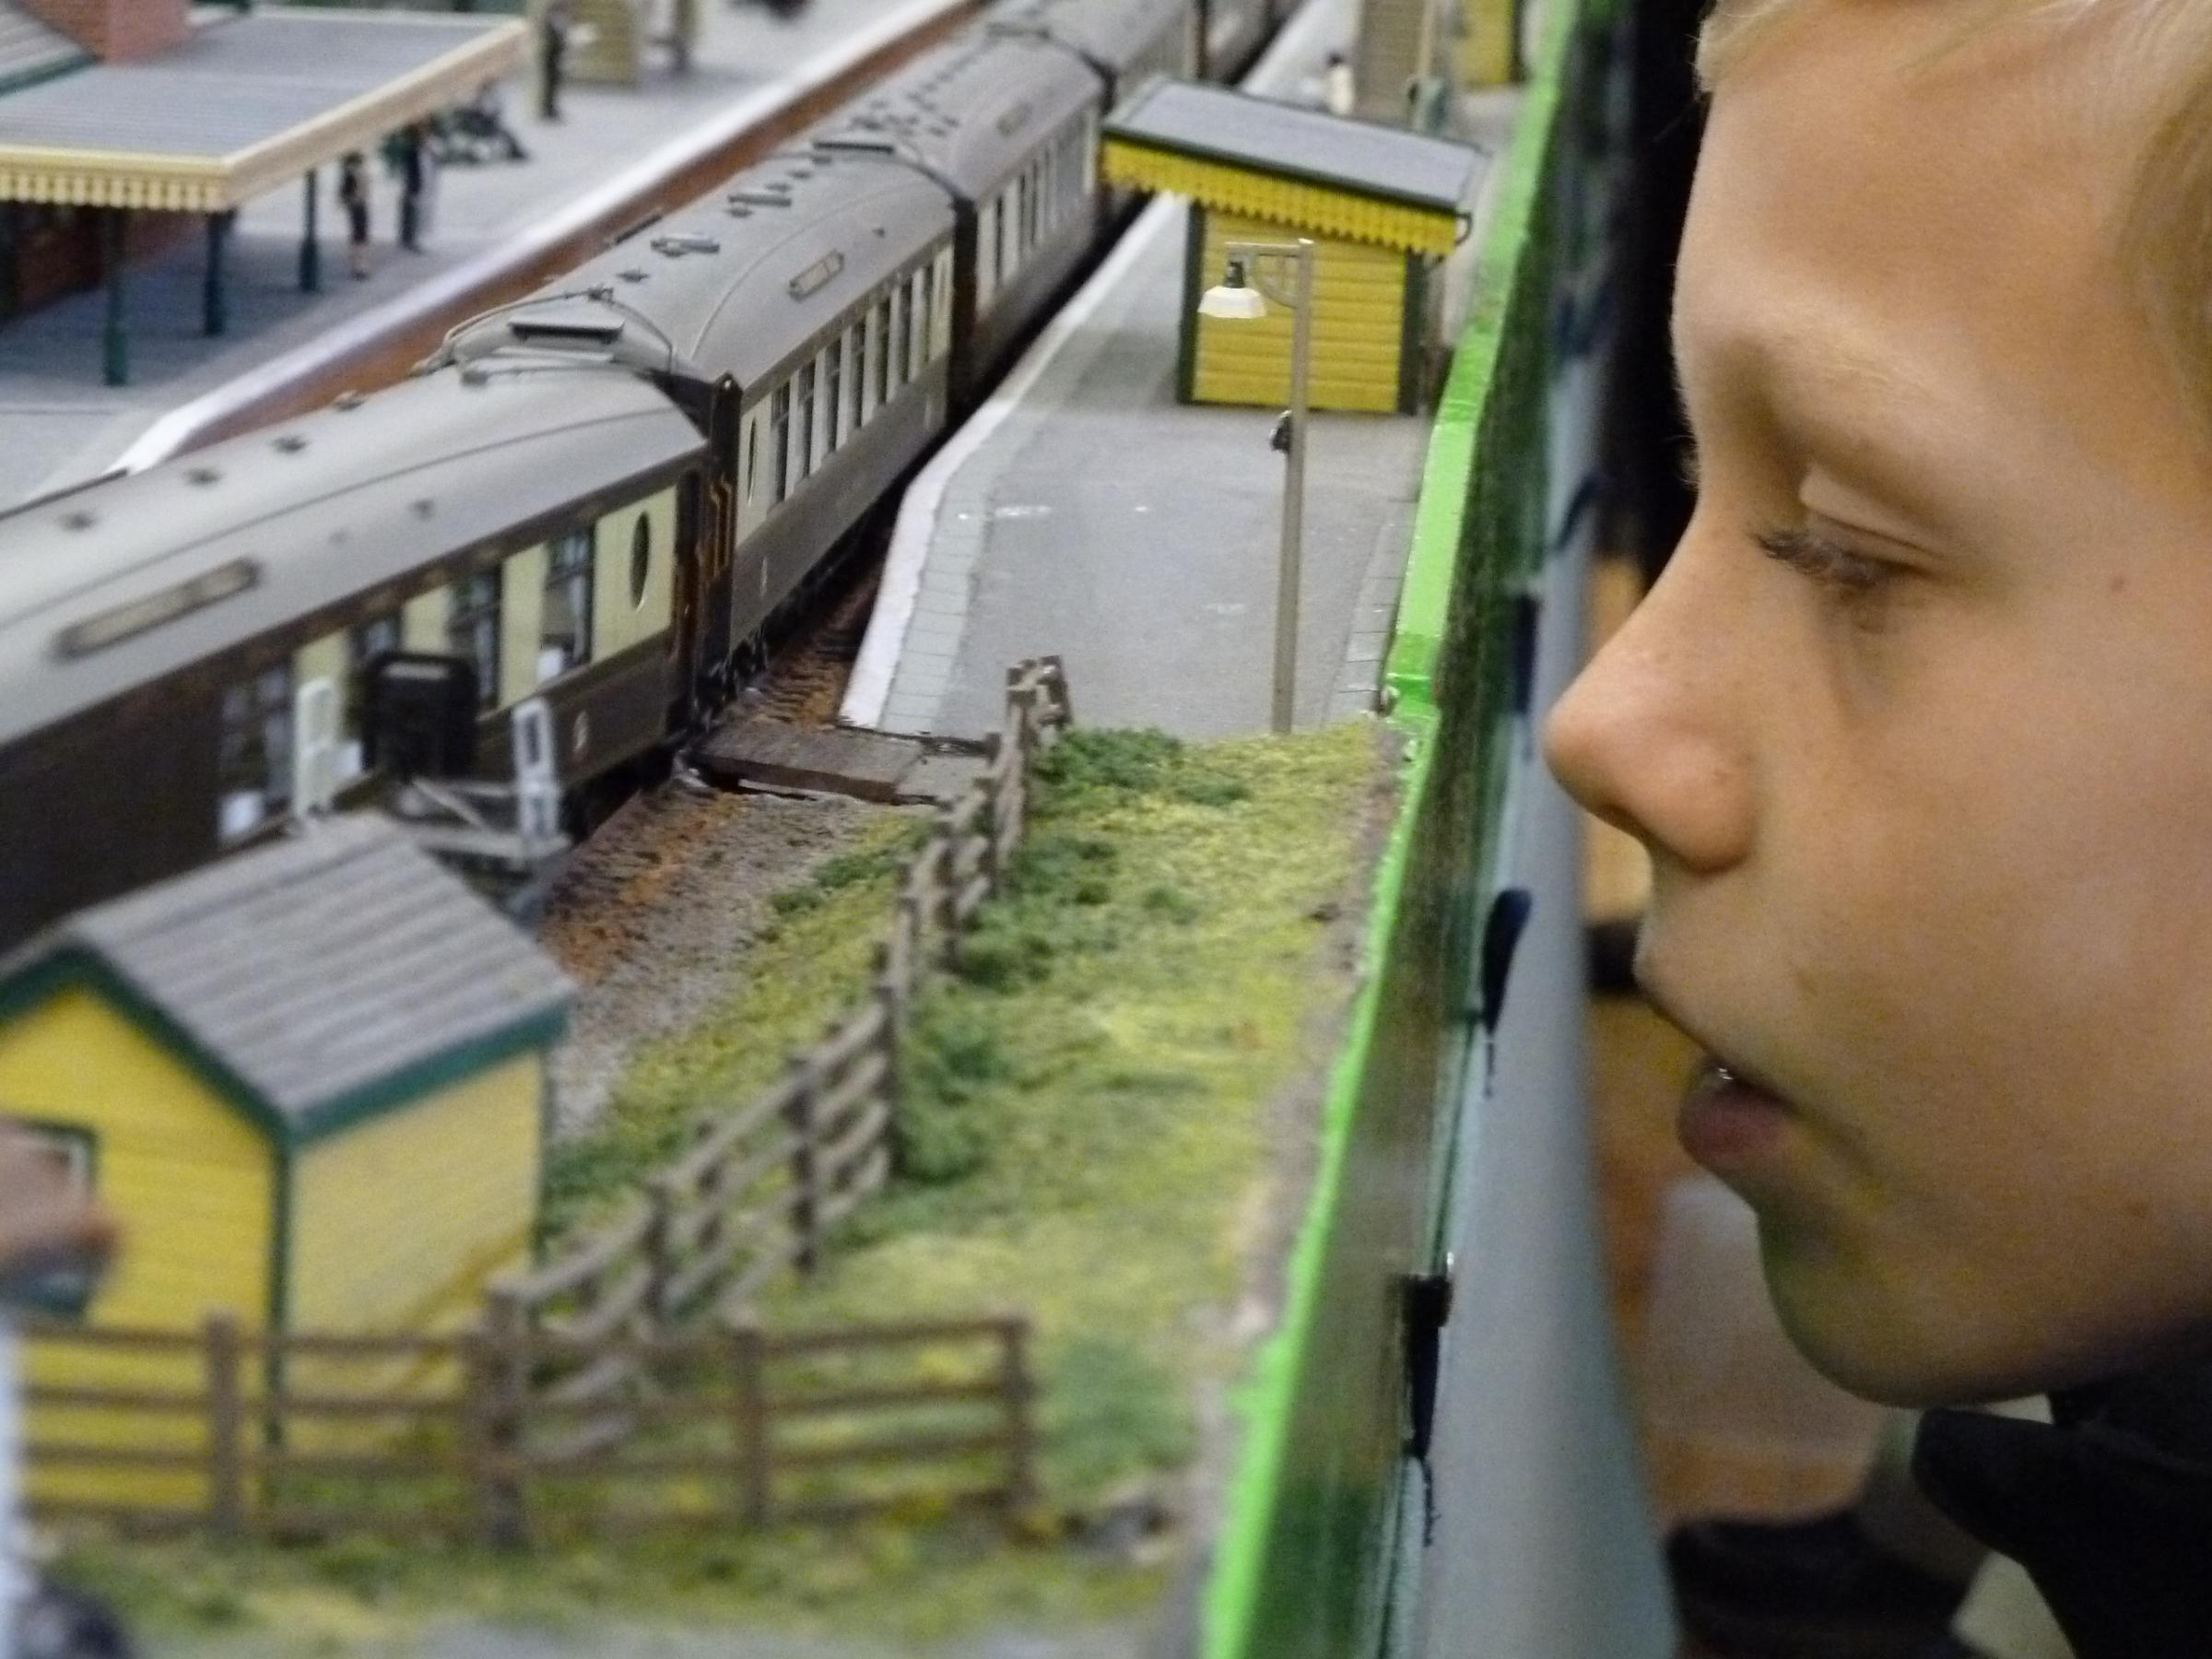 Model Railway Show (Rail Ex Taunton)